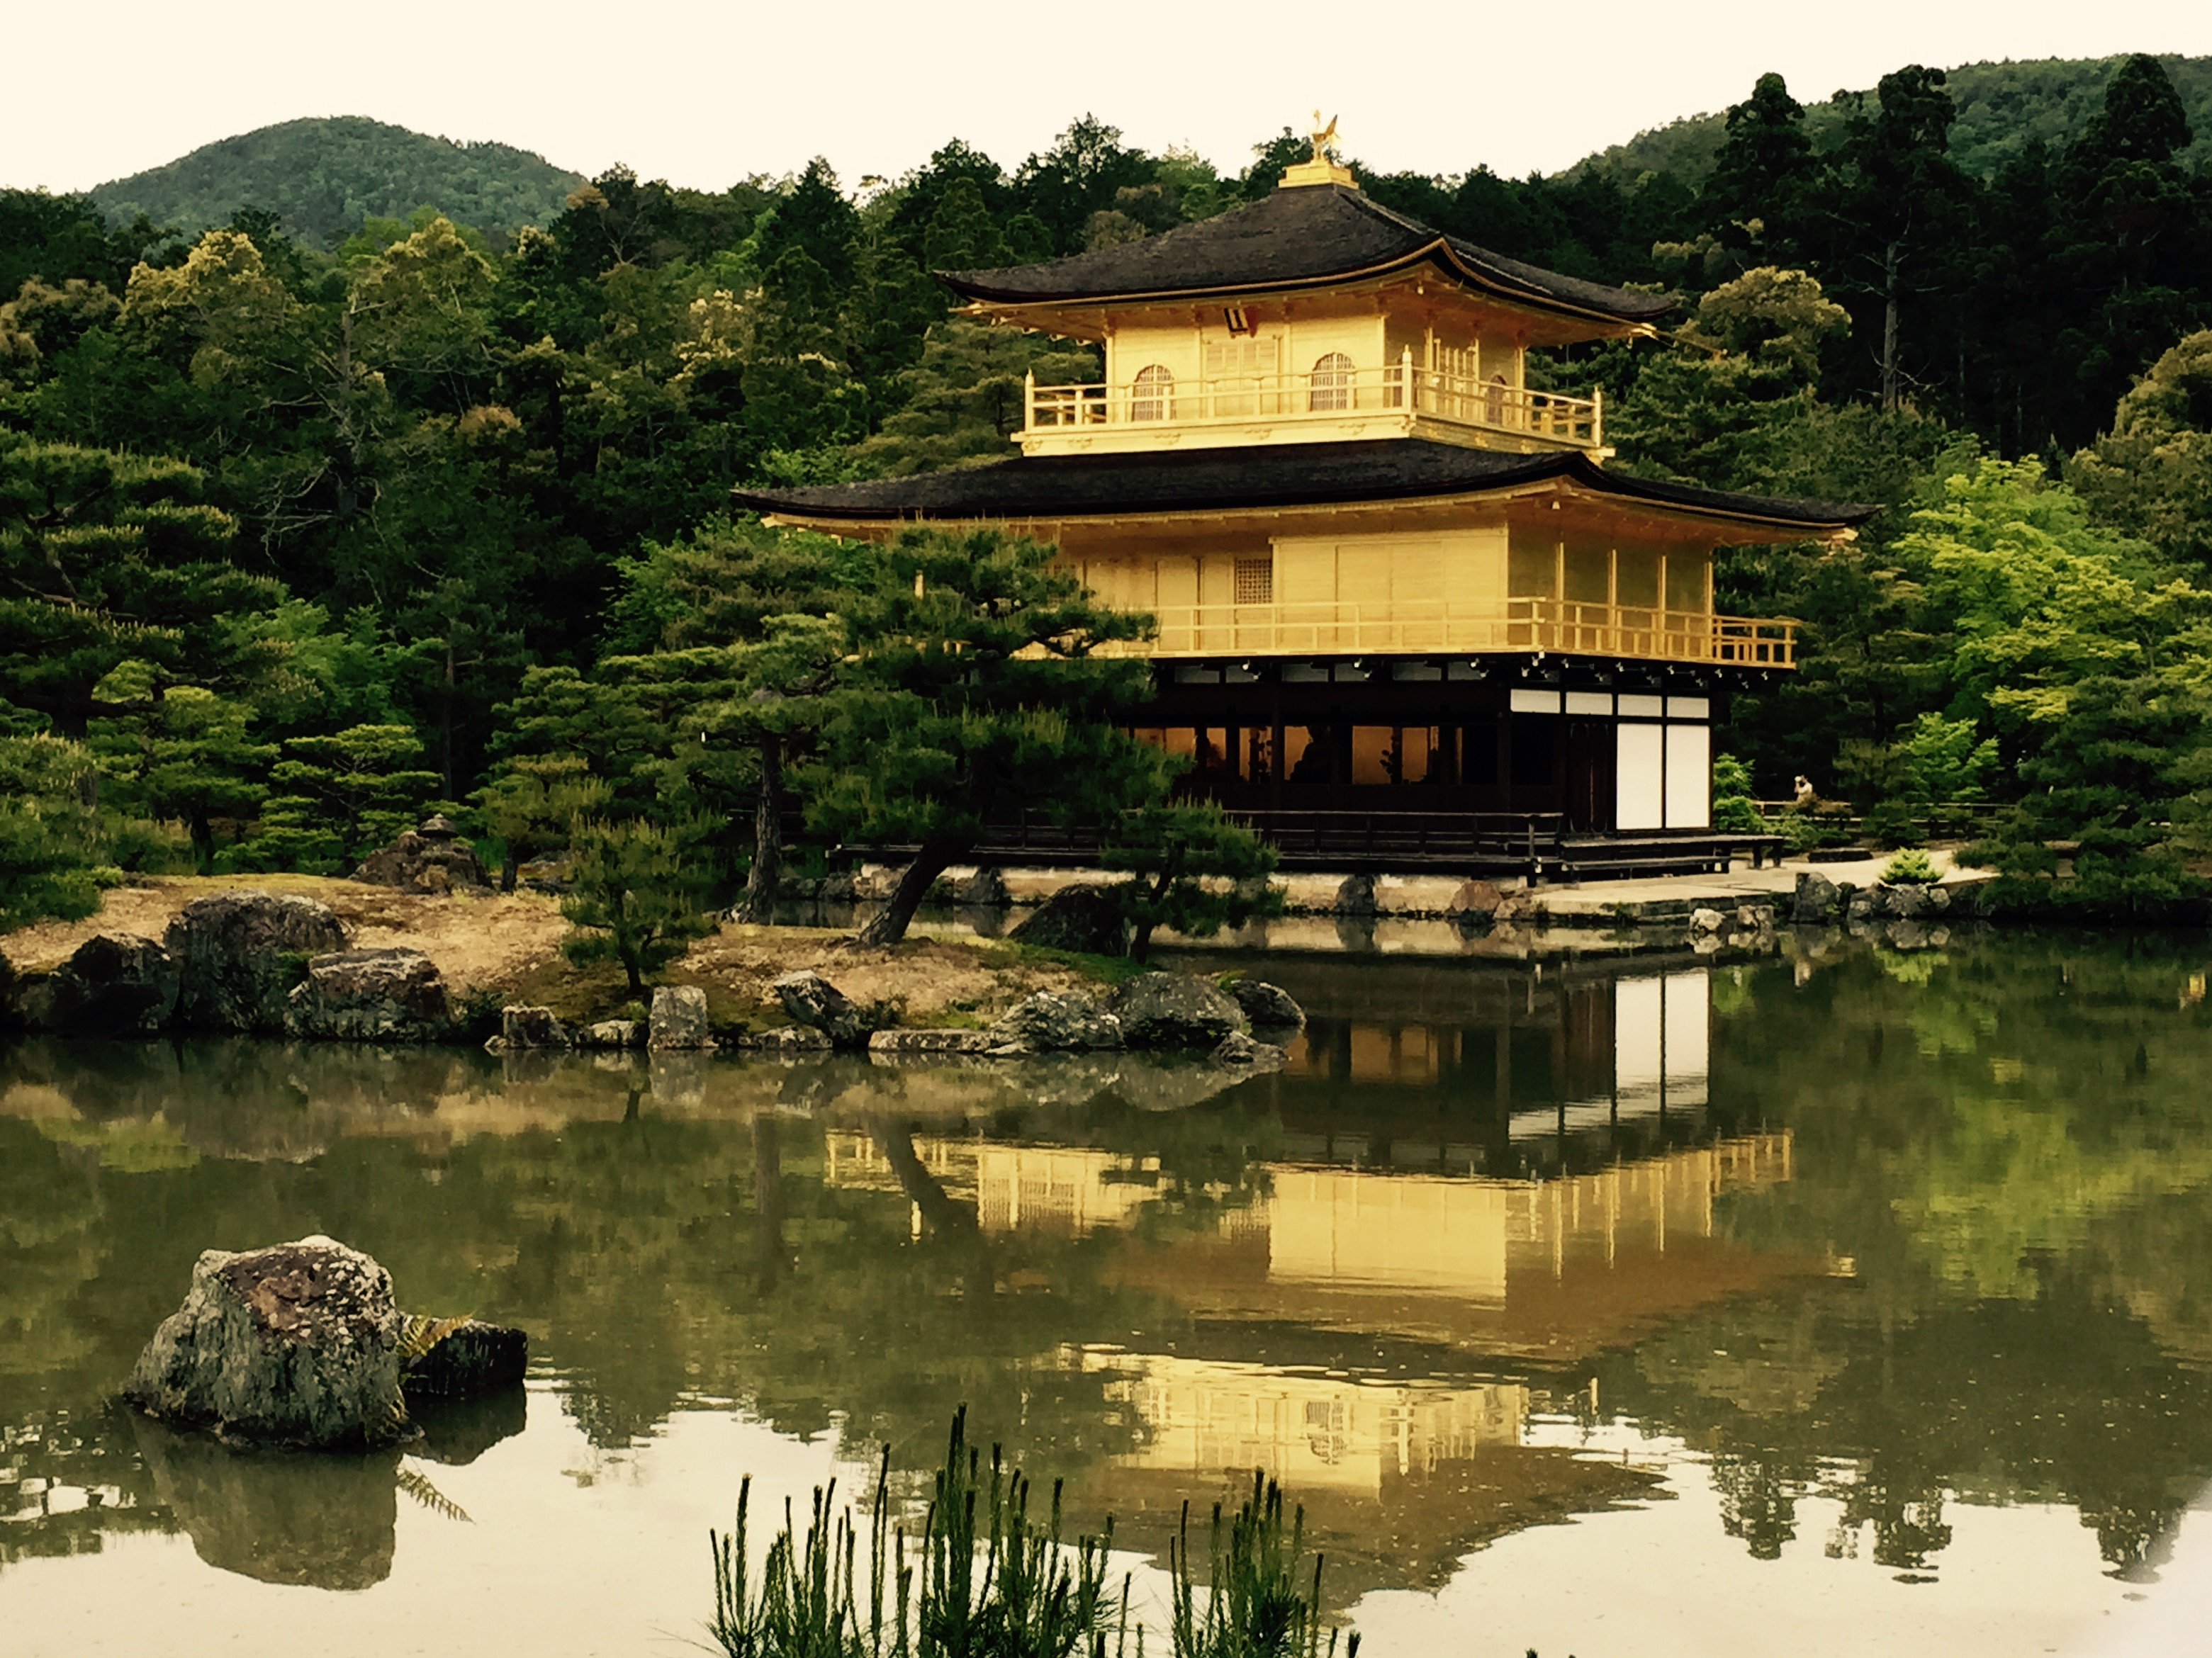 Lost in Love — Kyoto, Japan – DistantBeckons